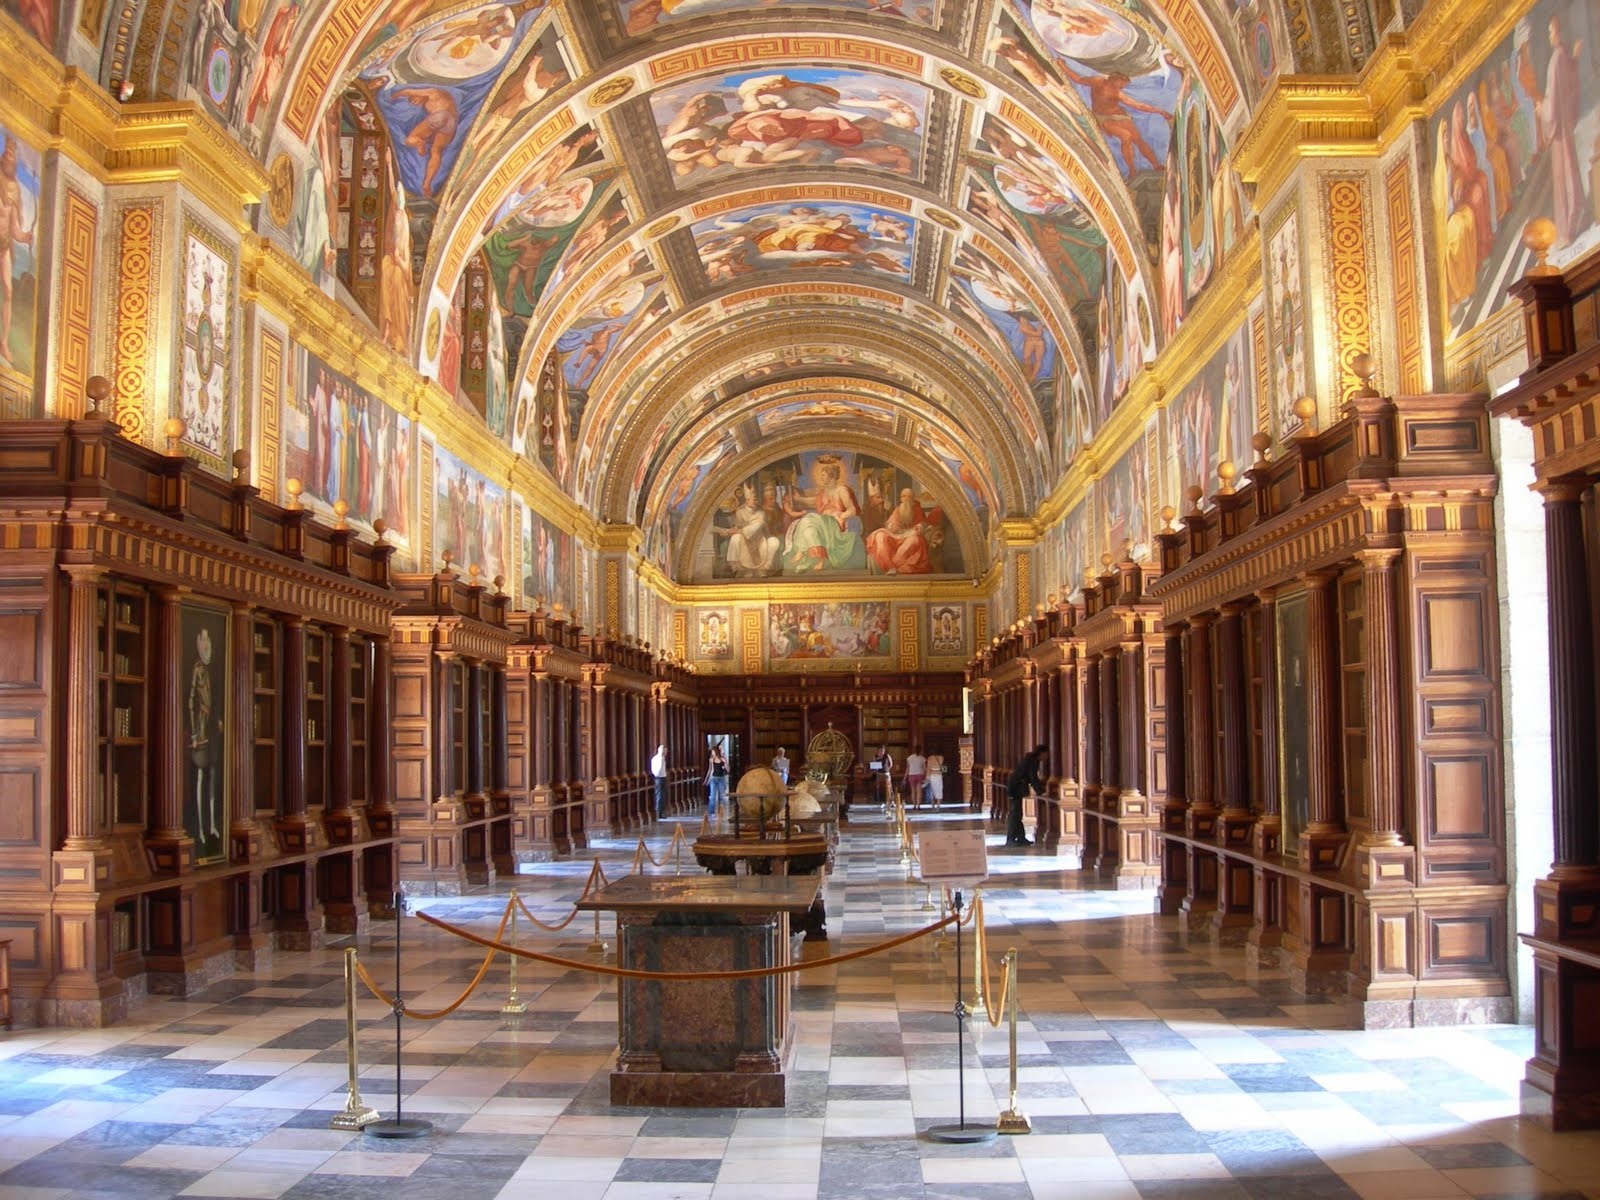 The Beautiful Library of El Escorial